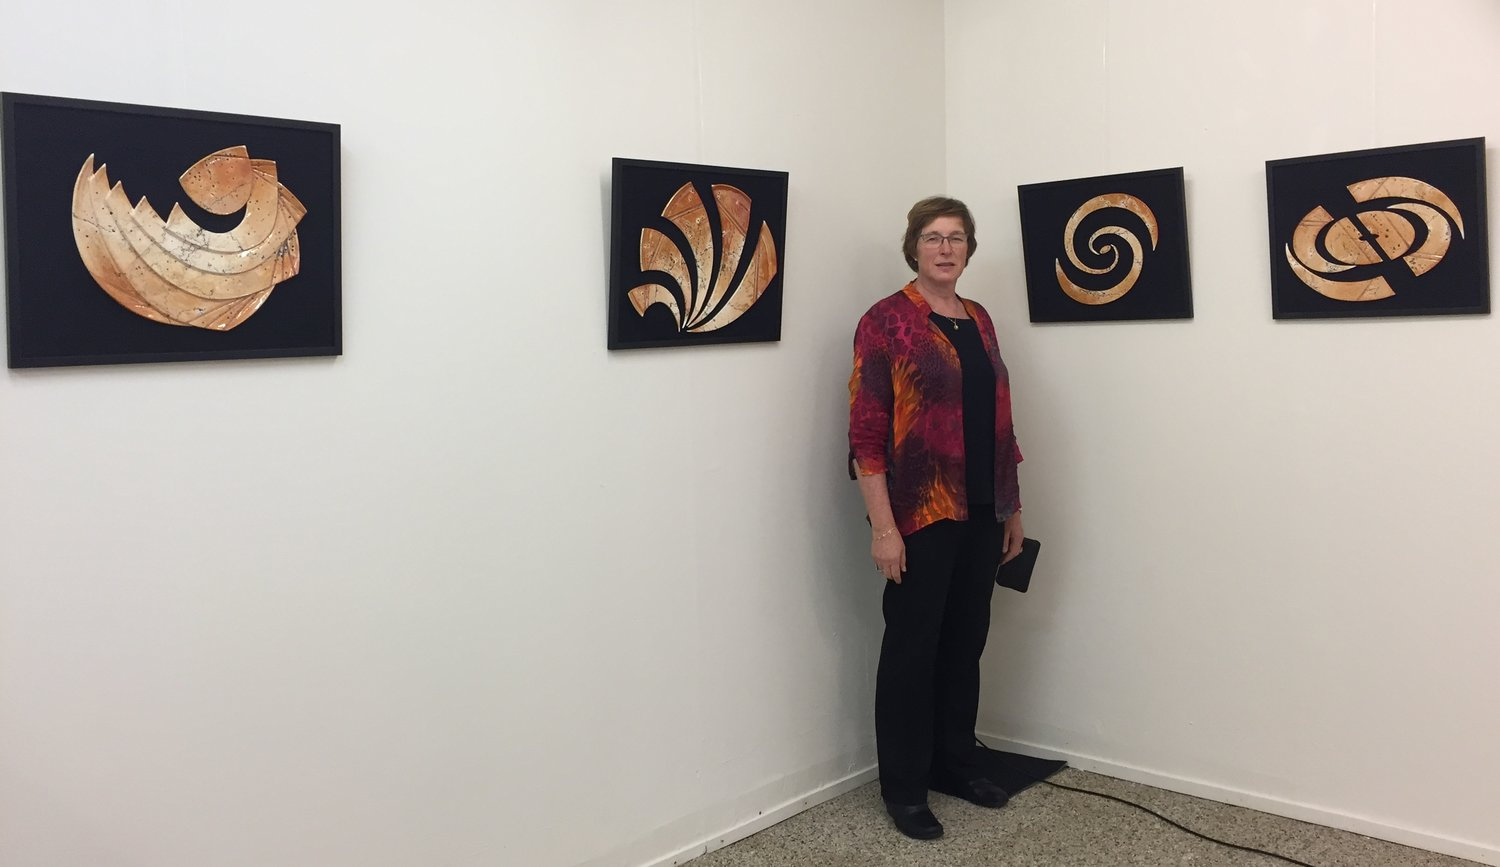 The artist, Swanica in front of her wall arts